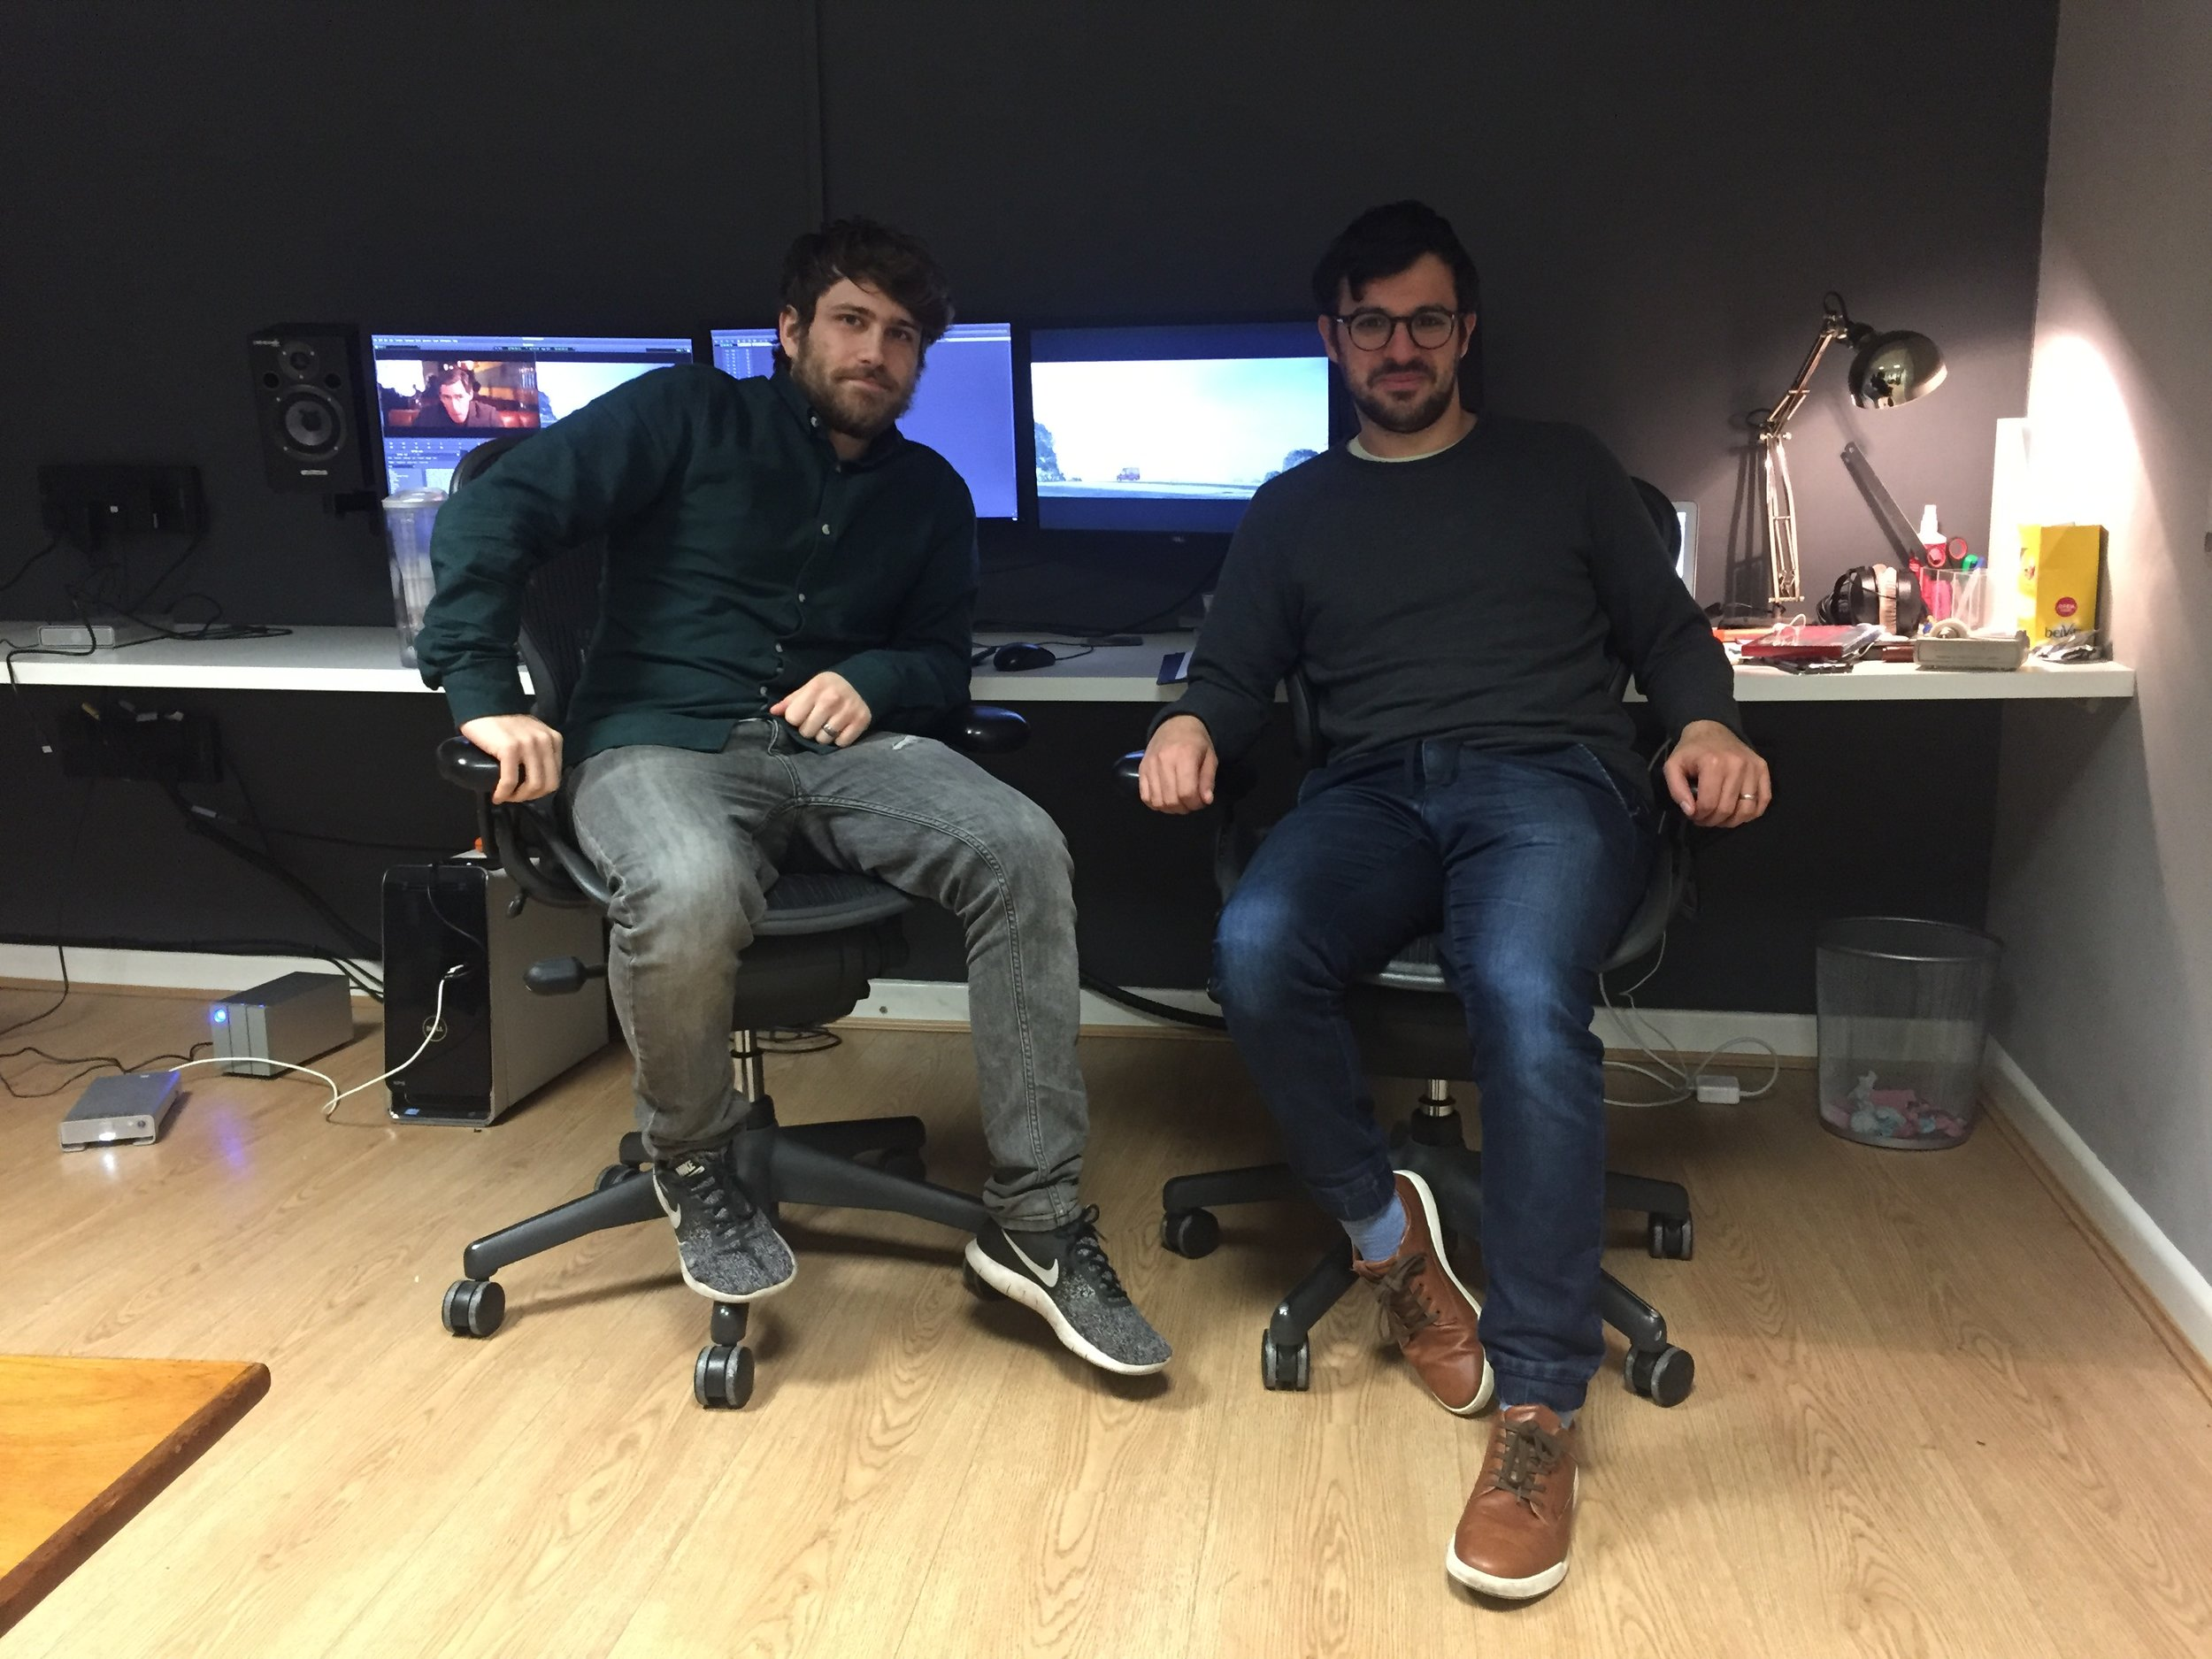 Simon and Ash are happily installed in our editing suite and working away on the cut.